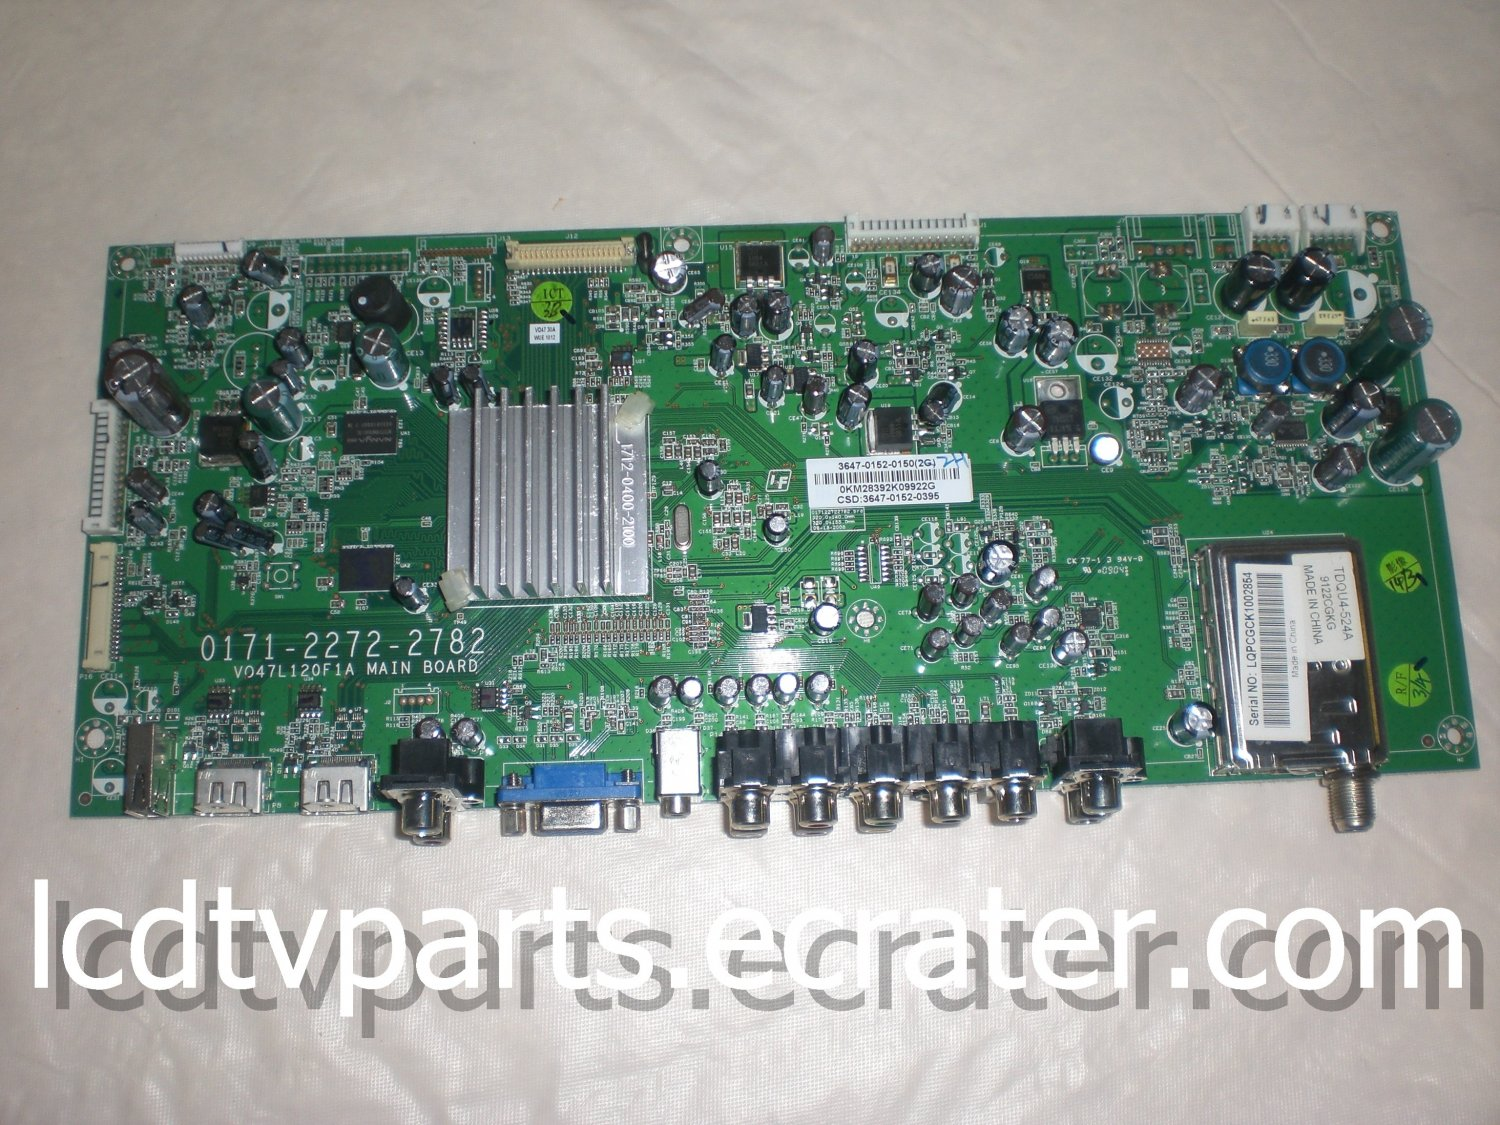 3647-0152-0395, 3647-0152-0150, 0171-2272-2782, Main Board for VIZIO VO47L FHDTV30A